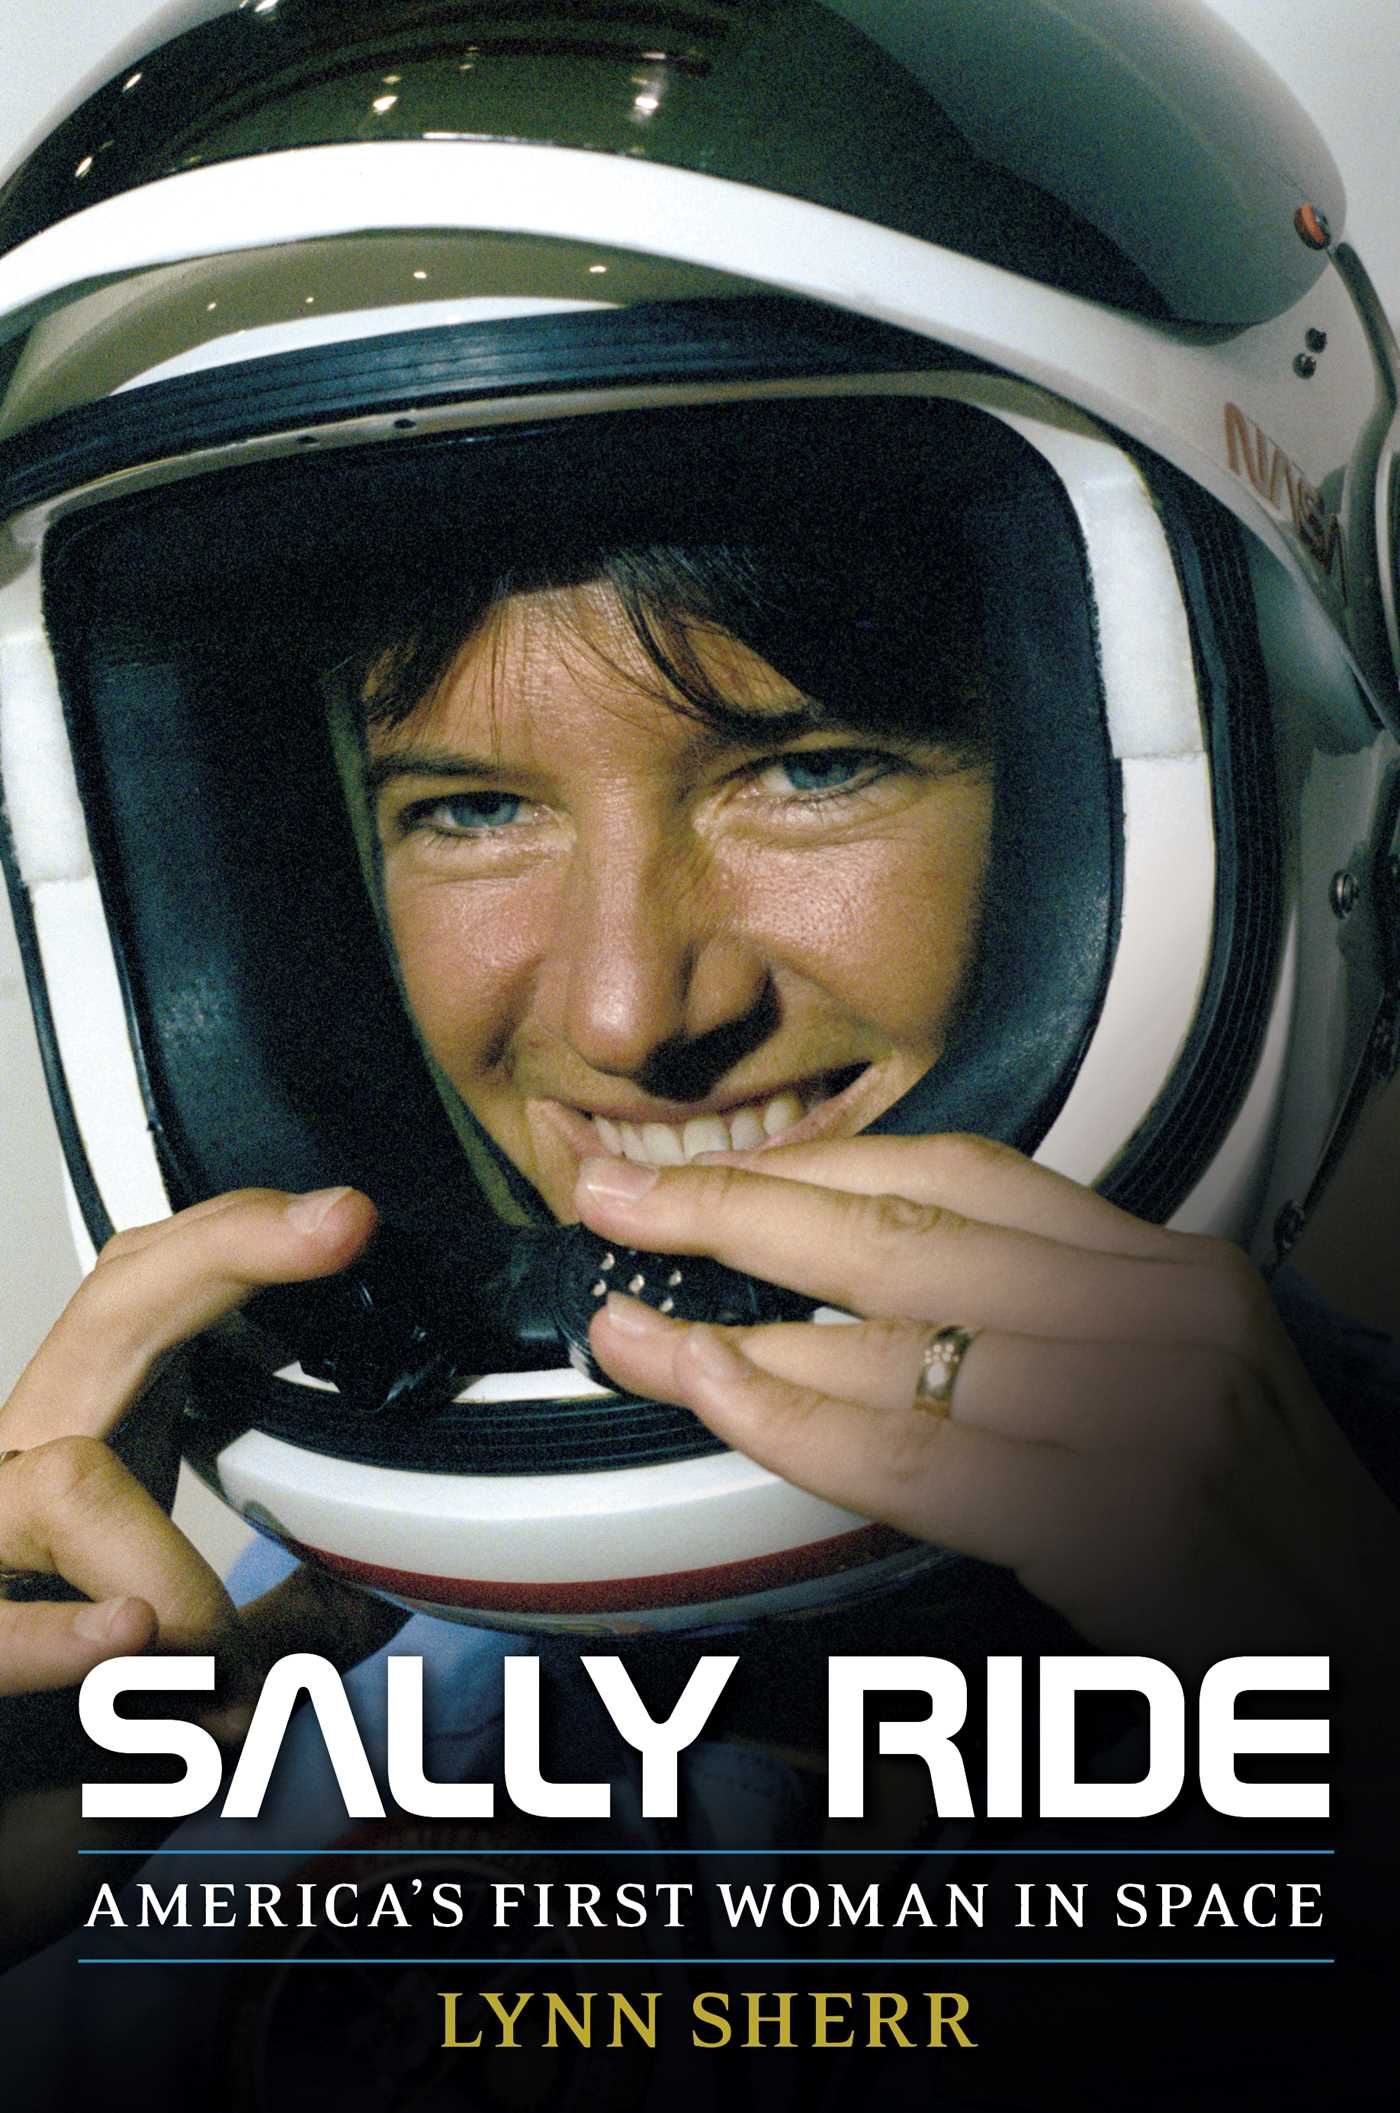 Sally-ride-9781476725765_hr